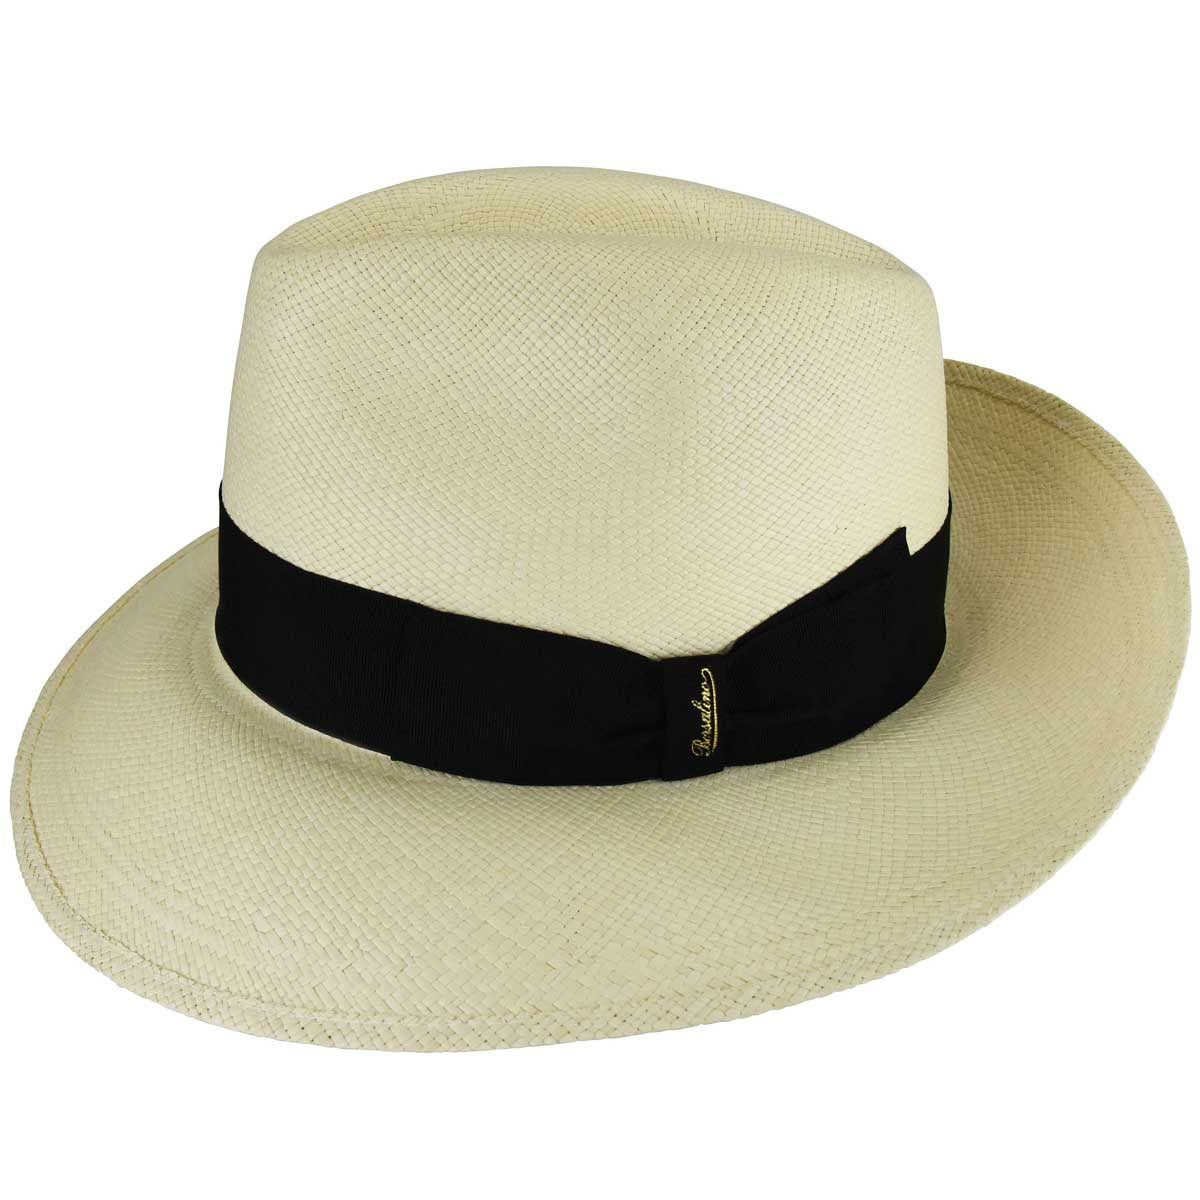 1920s Mens Hats – 8 Popular Styles 141088 Quito Panama Large Brim Fedora $268.00 AT vintagedancer.com